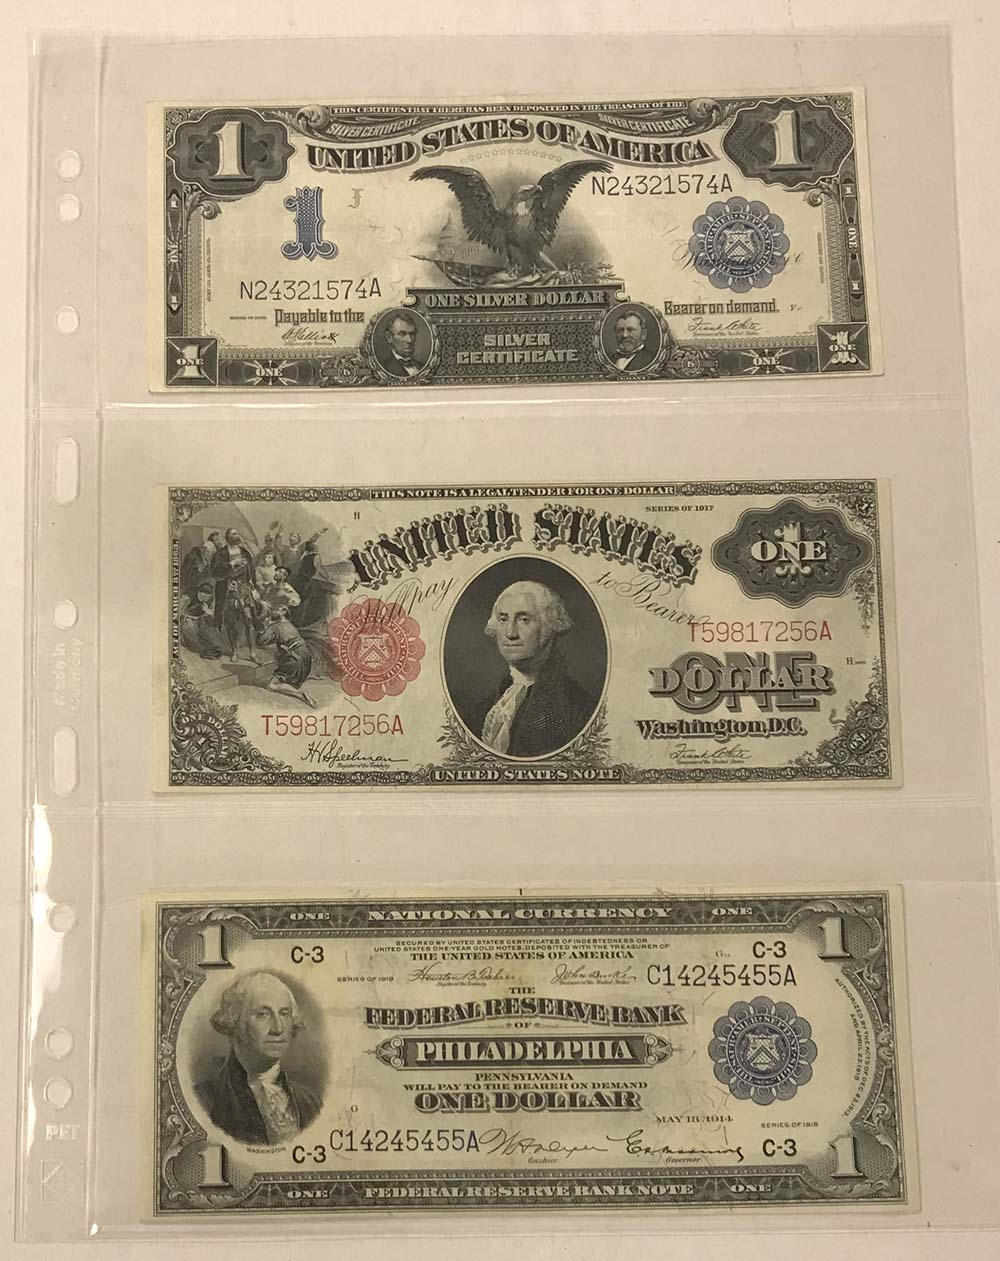 Hagner 3 Pocket Single Sided Stamp and Banknote Stock Sheets Pack of 10